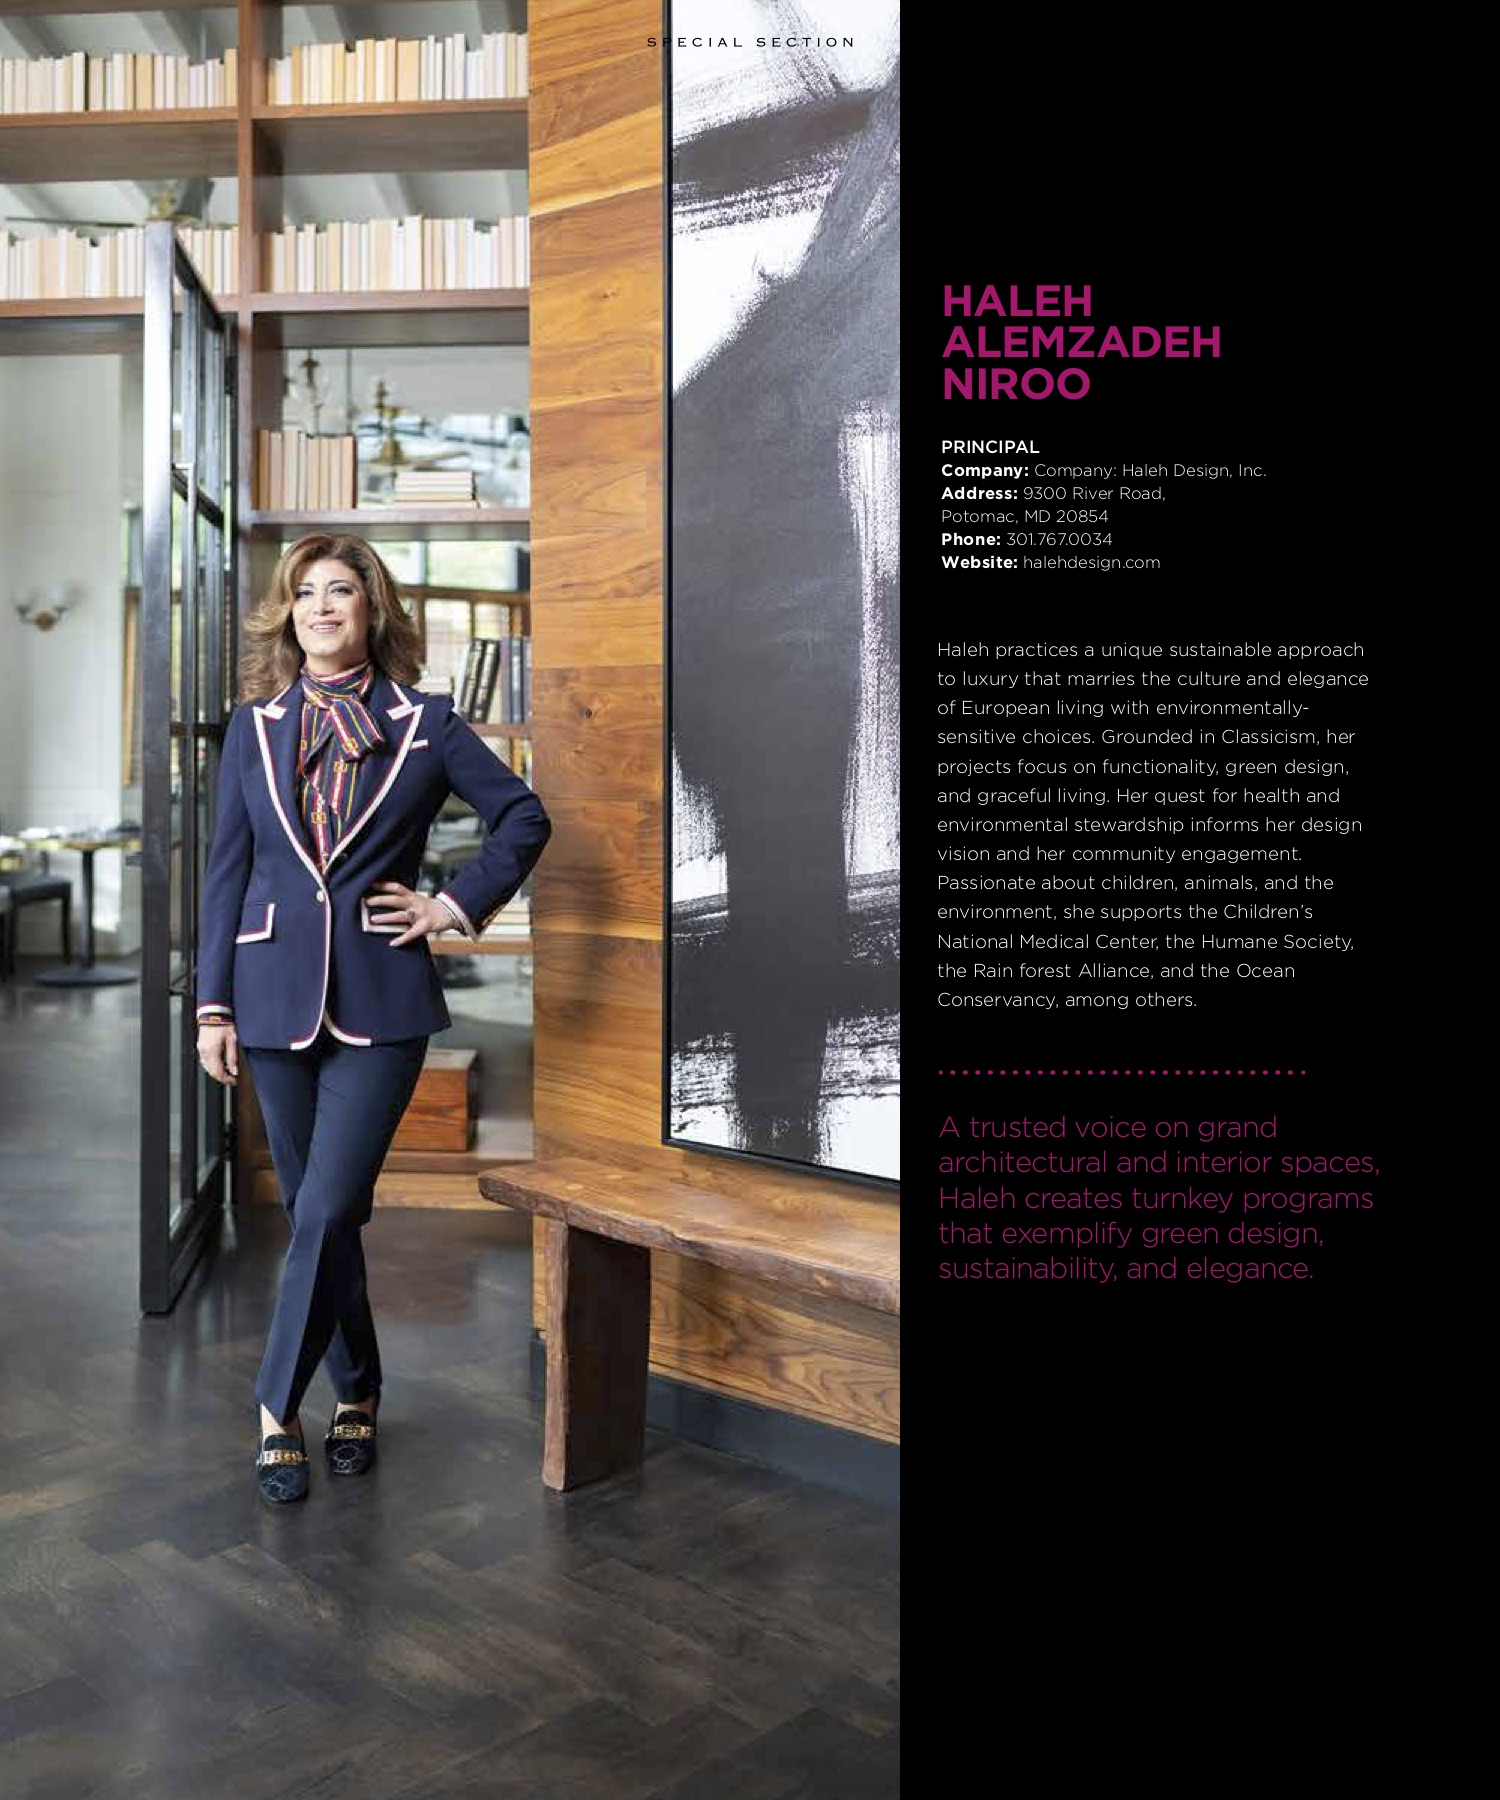 Haleh Niroo, a Luxury Interior Designer female standing up during a DC Women Award Photo Shoot.